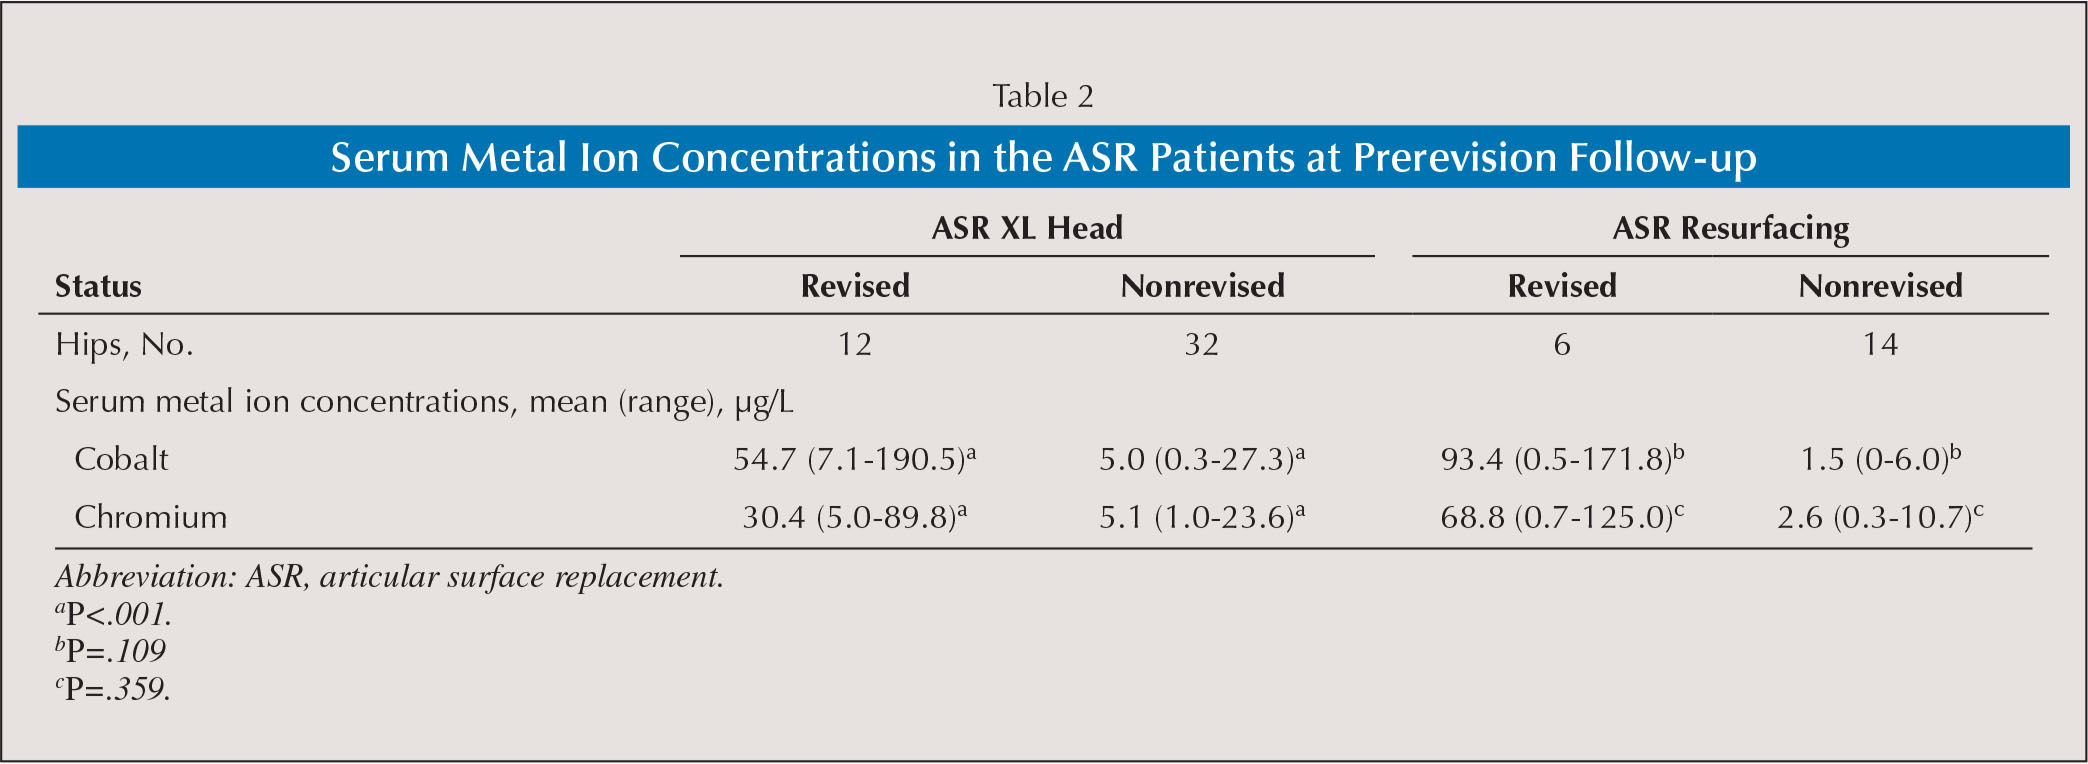 Serum Metal Ion Concentrations in the ASR Patients at Prerevision Follow-up